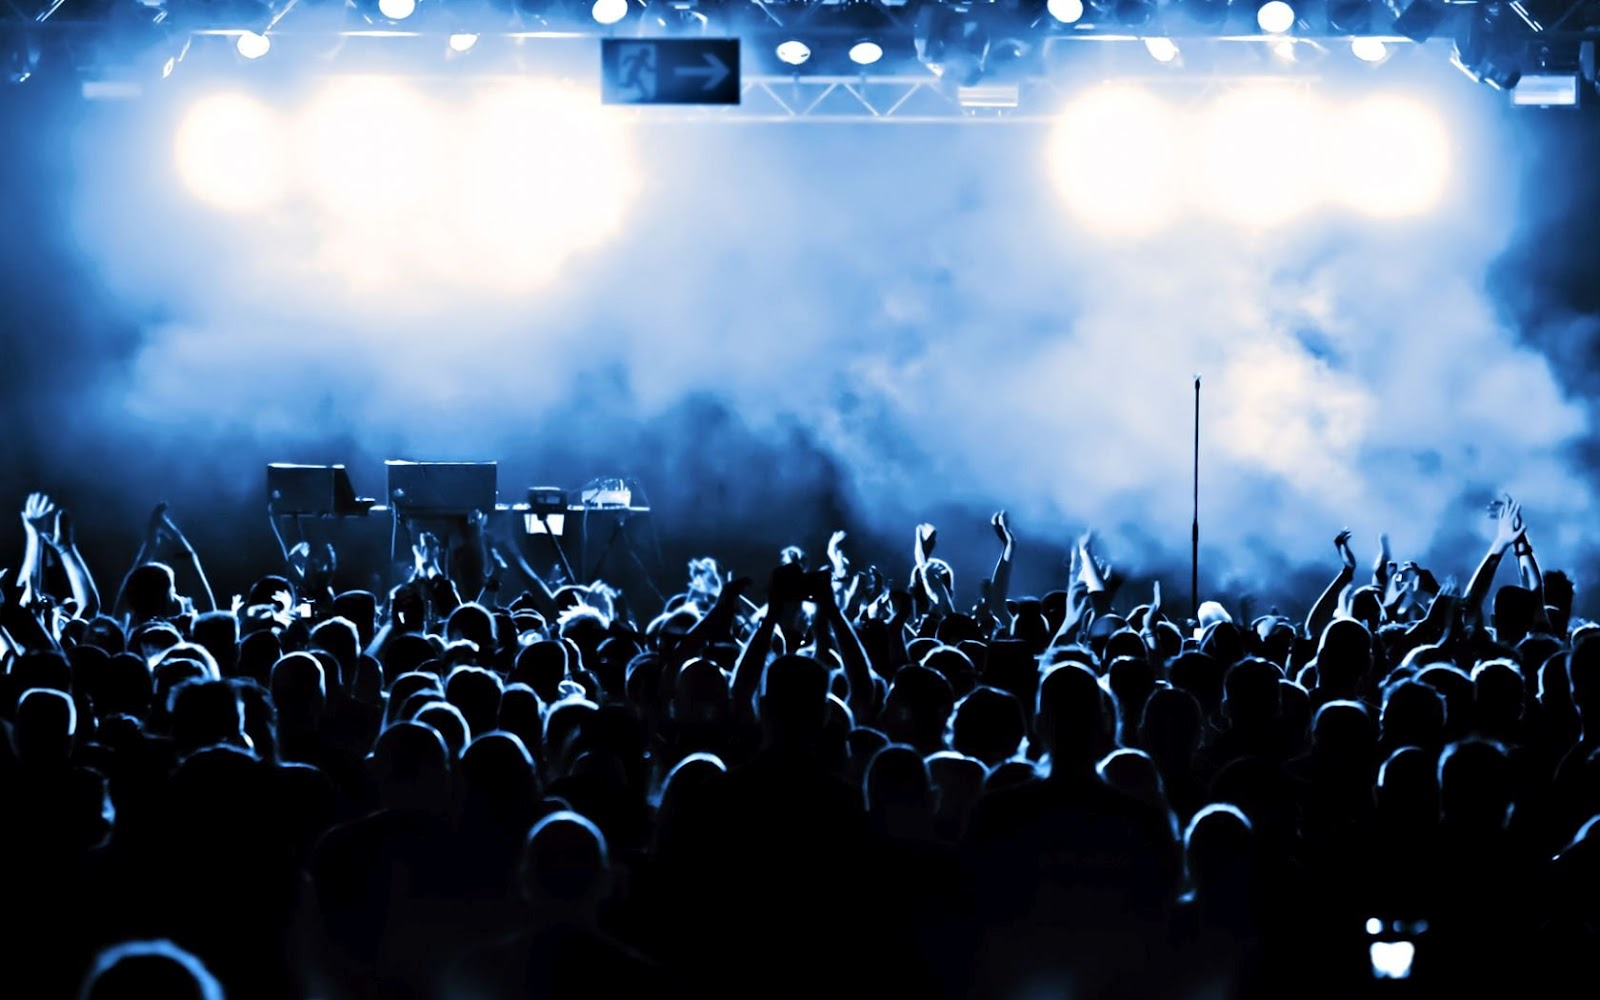 Music Concert Noise HD Wallpaper 1600x1000